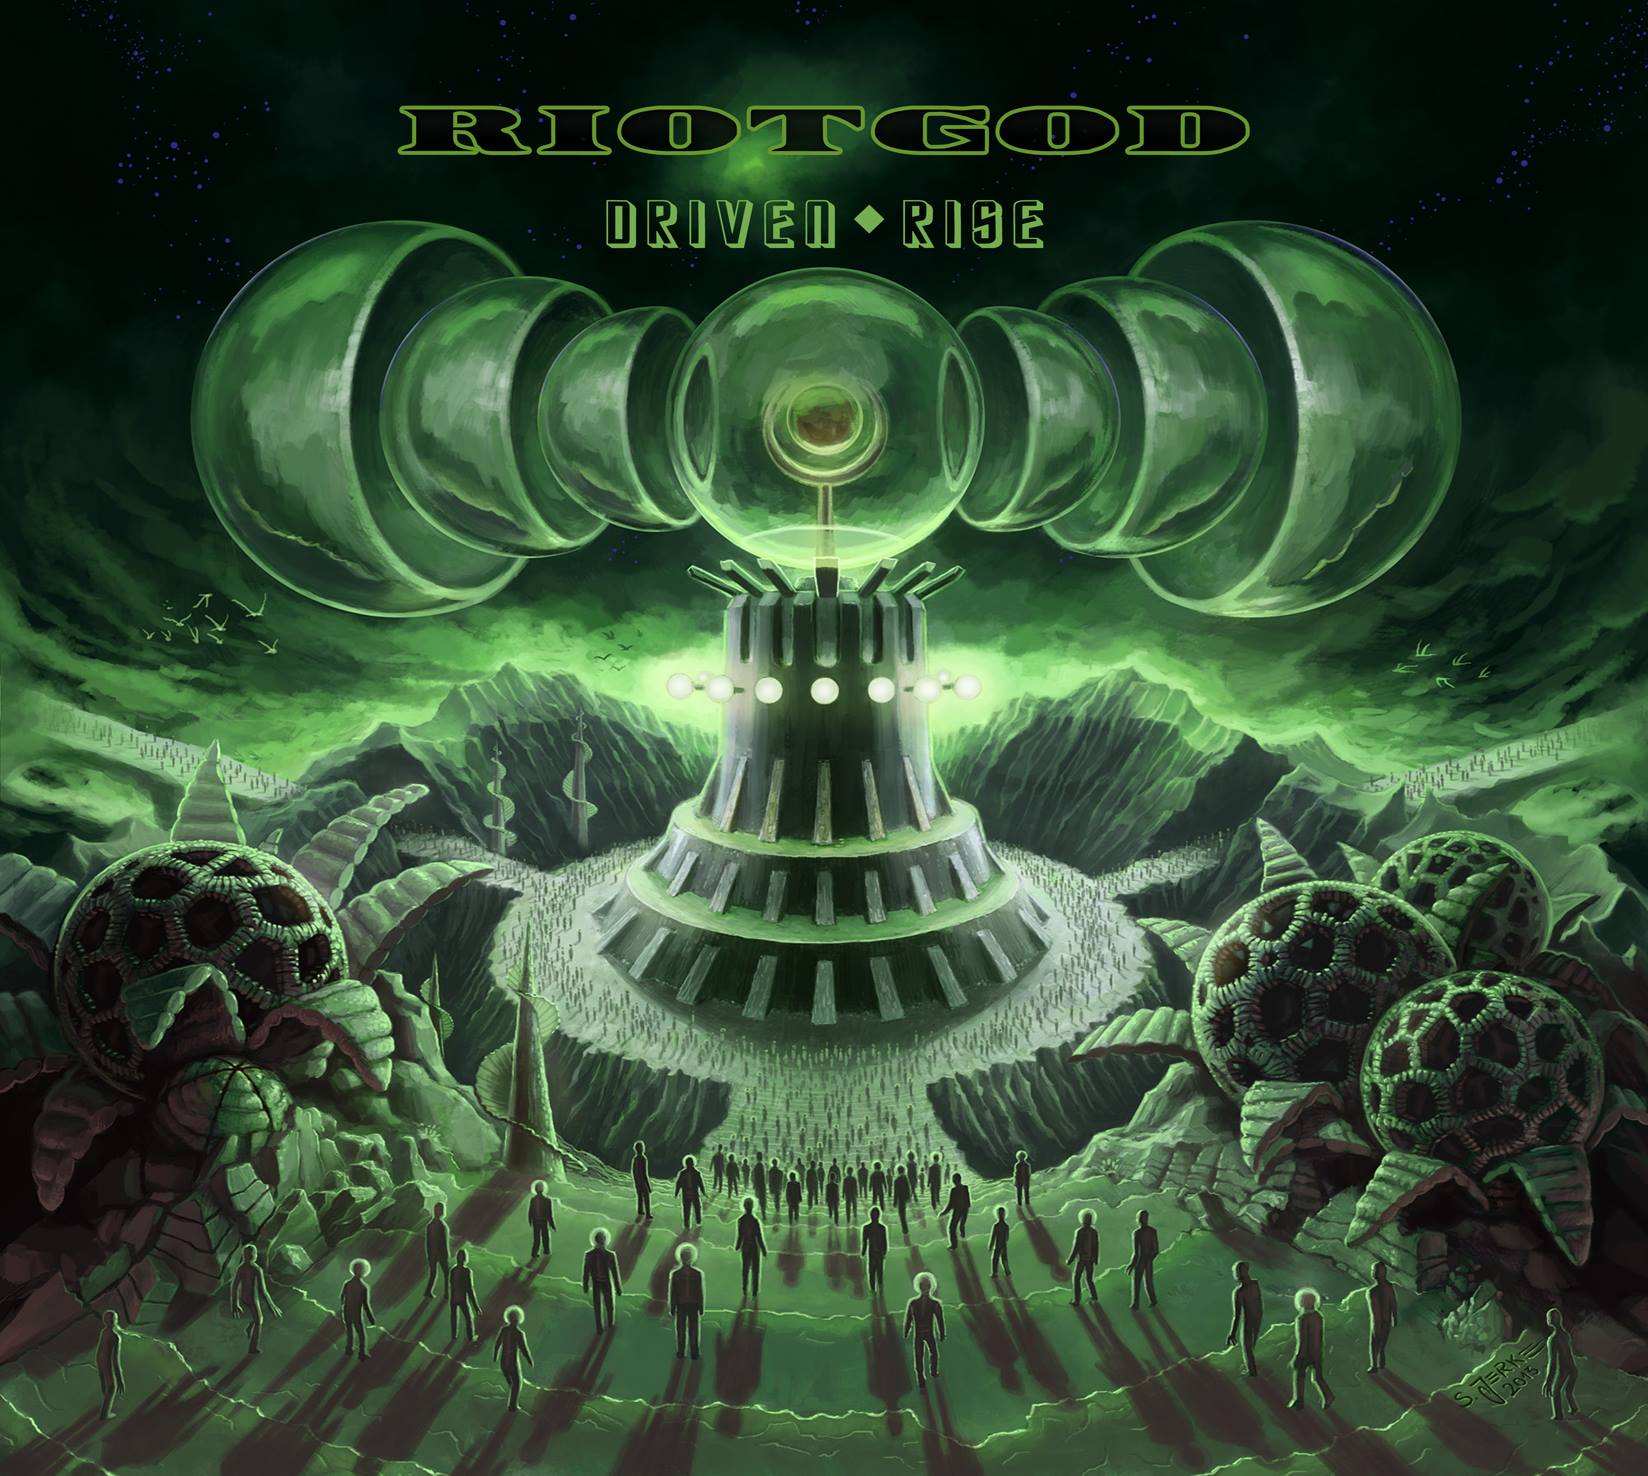 Rise To Power Monstrosity: RIOTGOD To Release 'Driven Rise' March 18 On Metalville